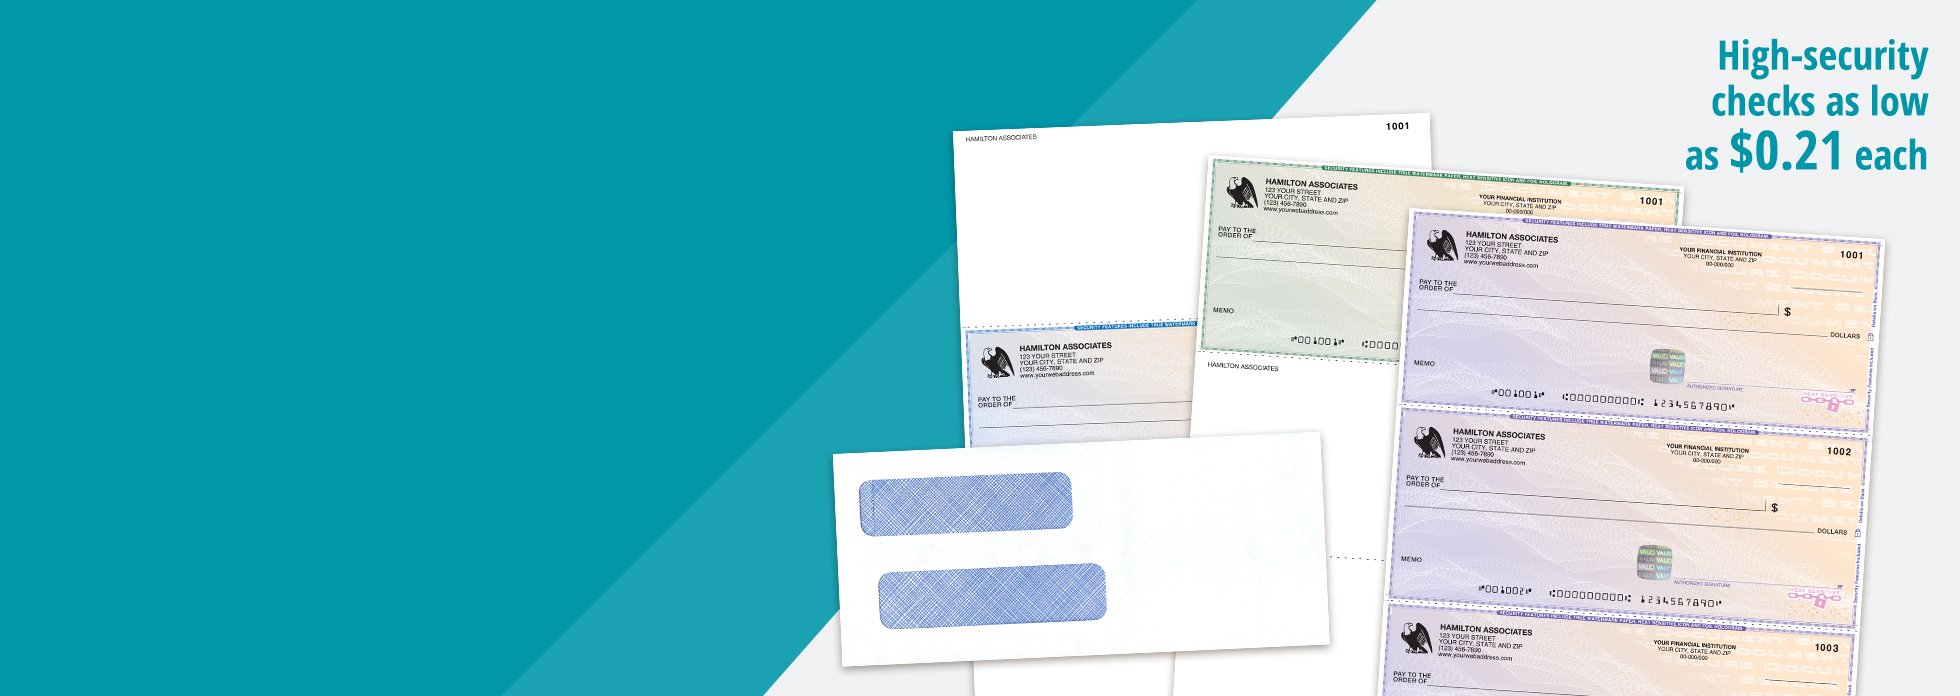 Make security your priority. Protect your business with Abila software<br>compatible high-security checks. Shop Checks